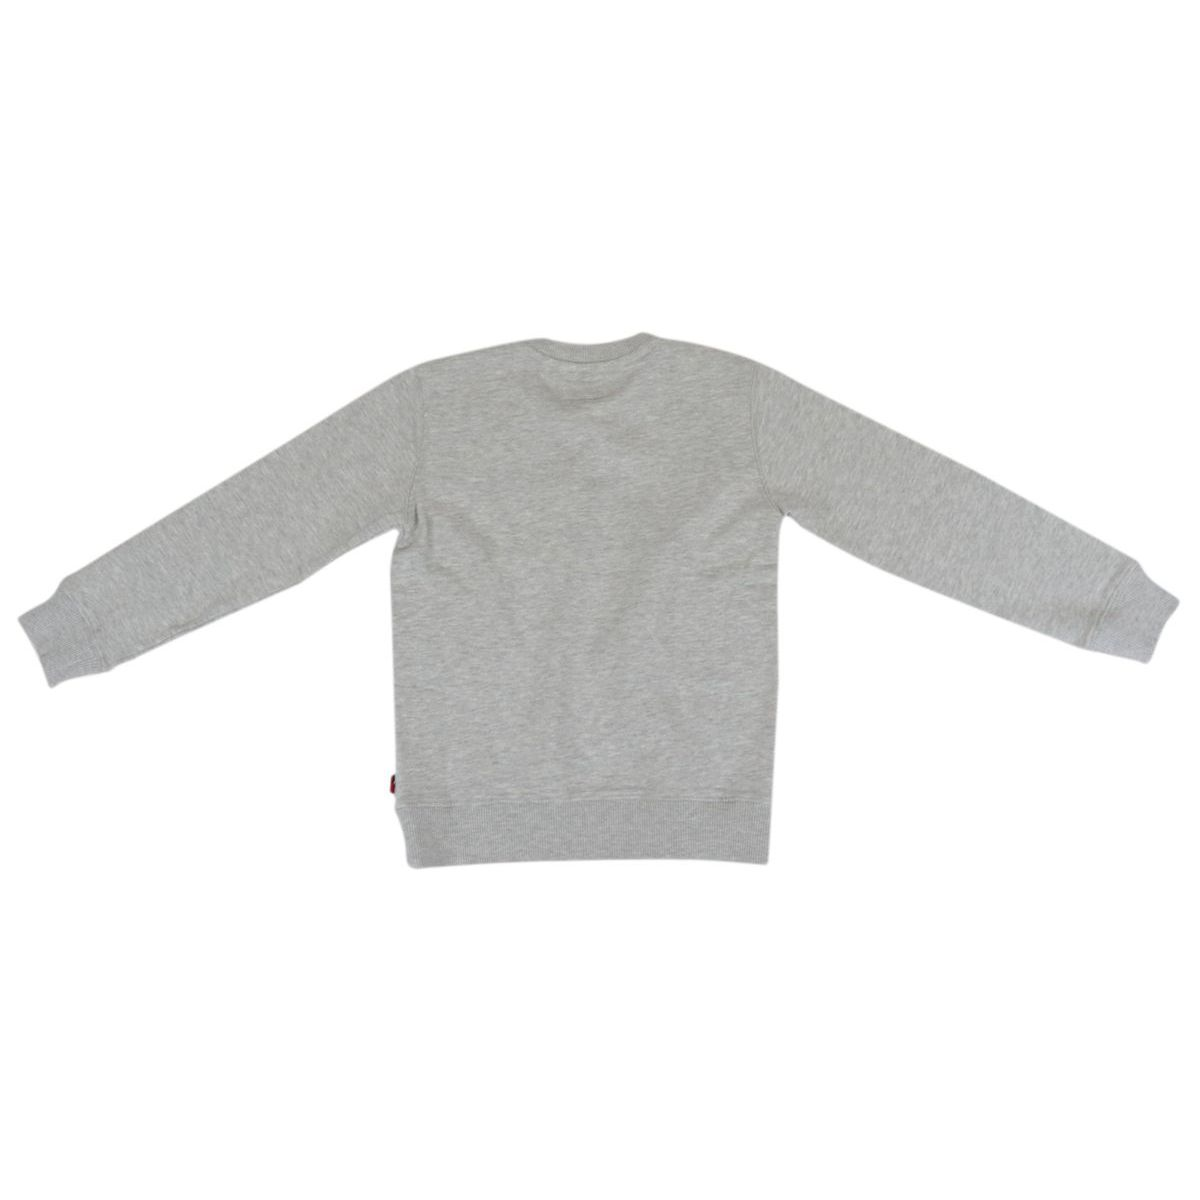 Crewneck cotton sweatshirt with contrasting lettering print Gray Woolrich